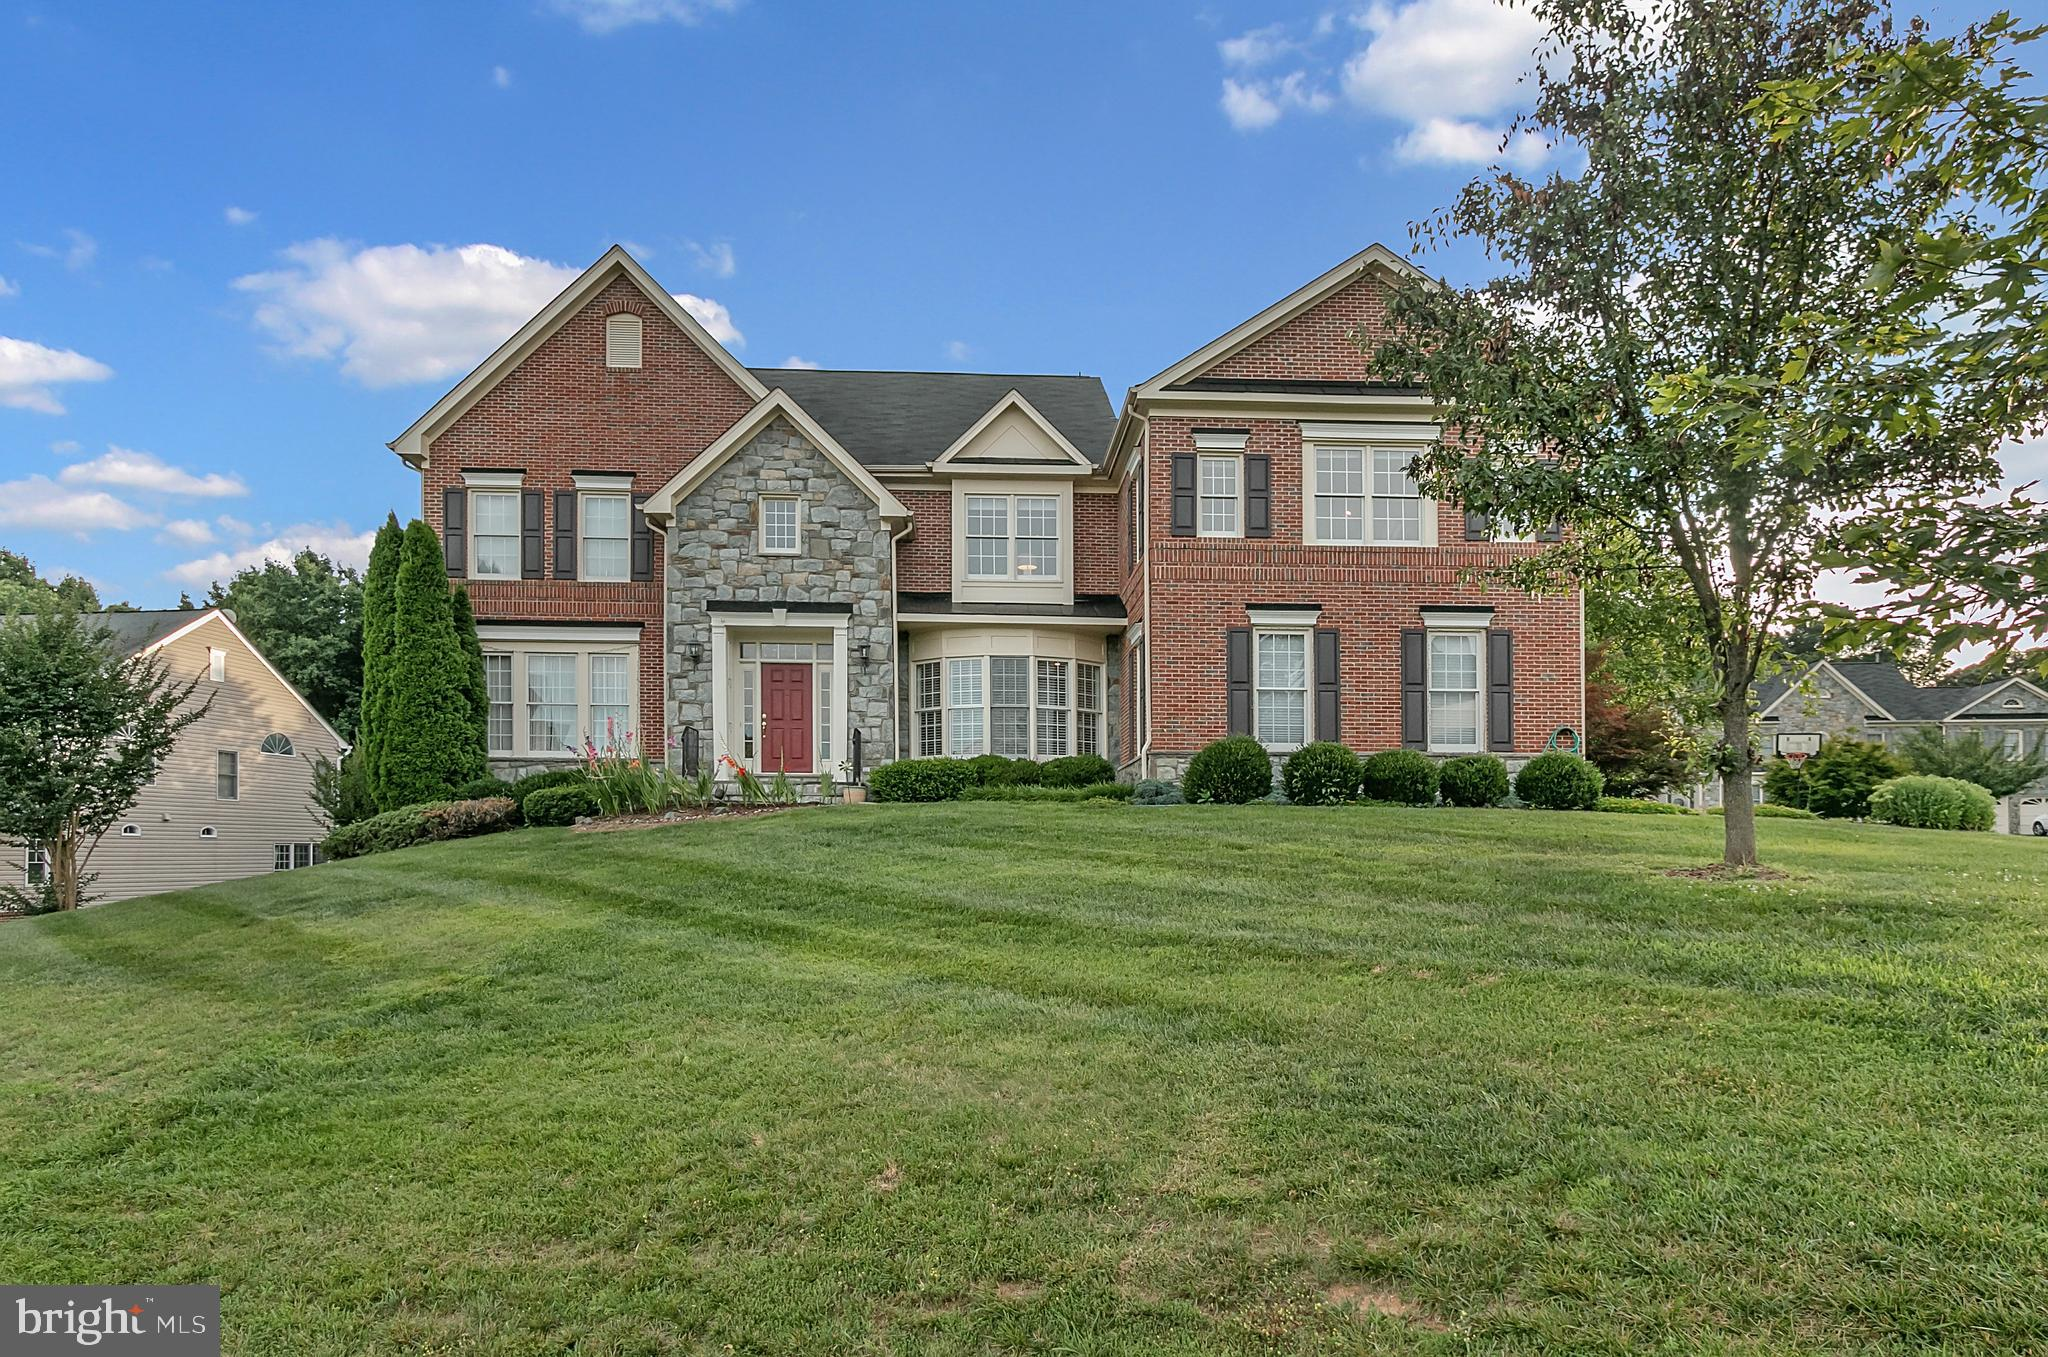 13910 CARLSON FARM DRIVE, GERMANTOWN, MD 20874